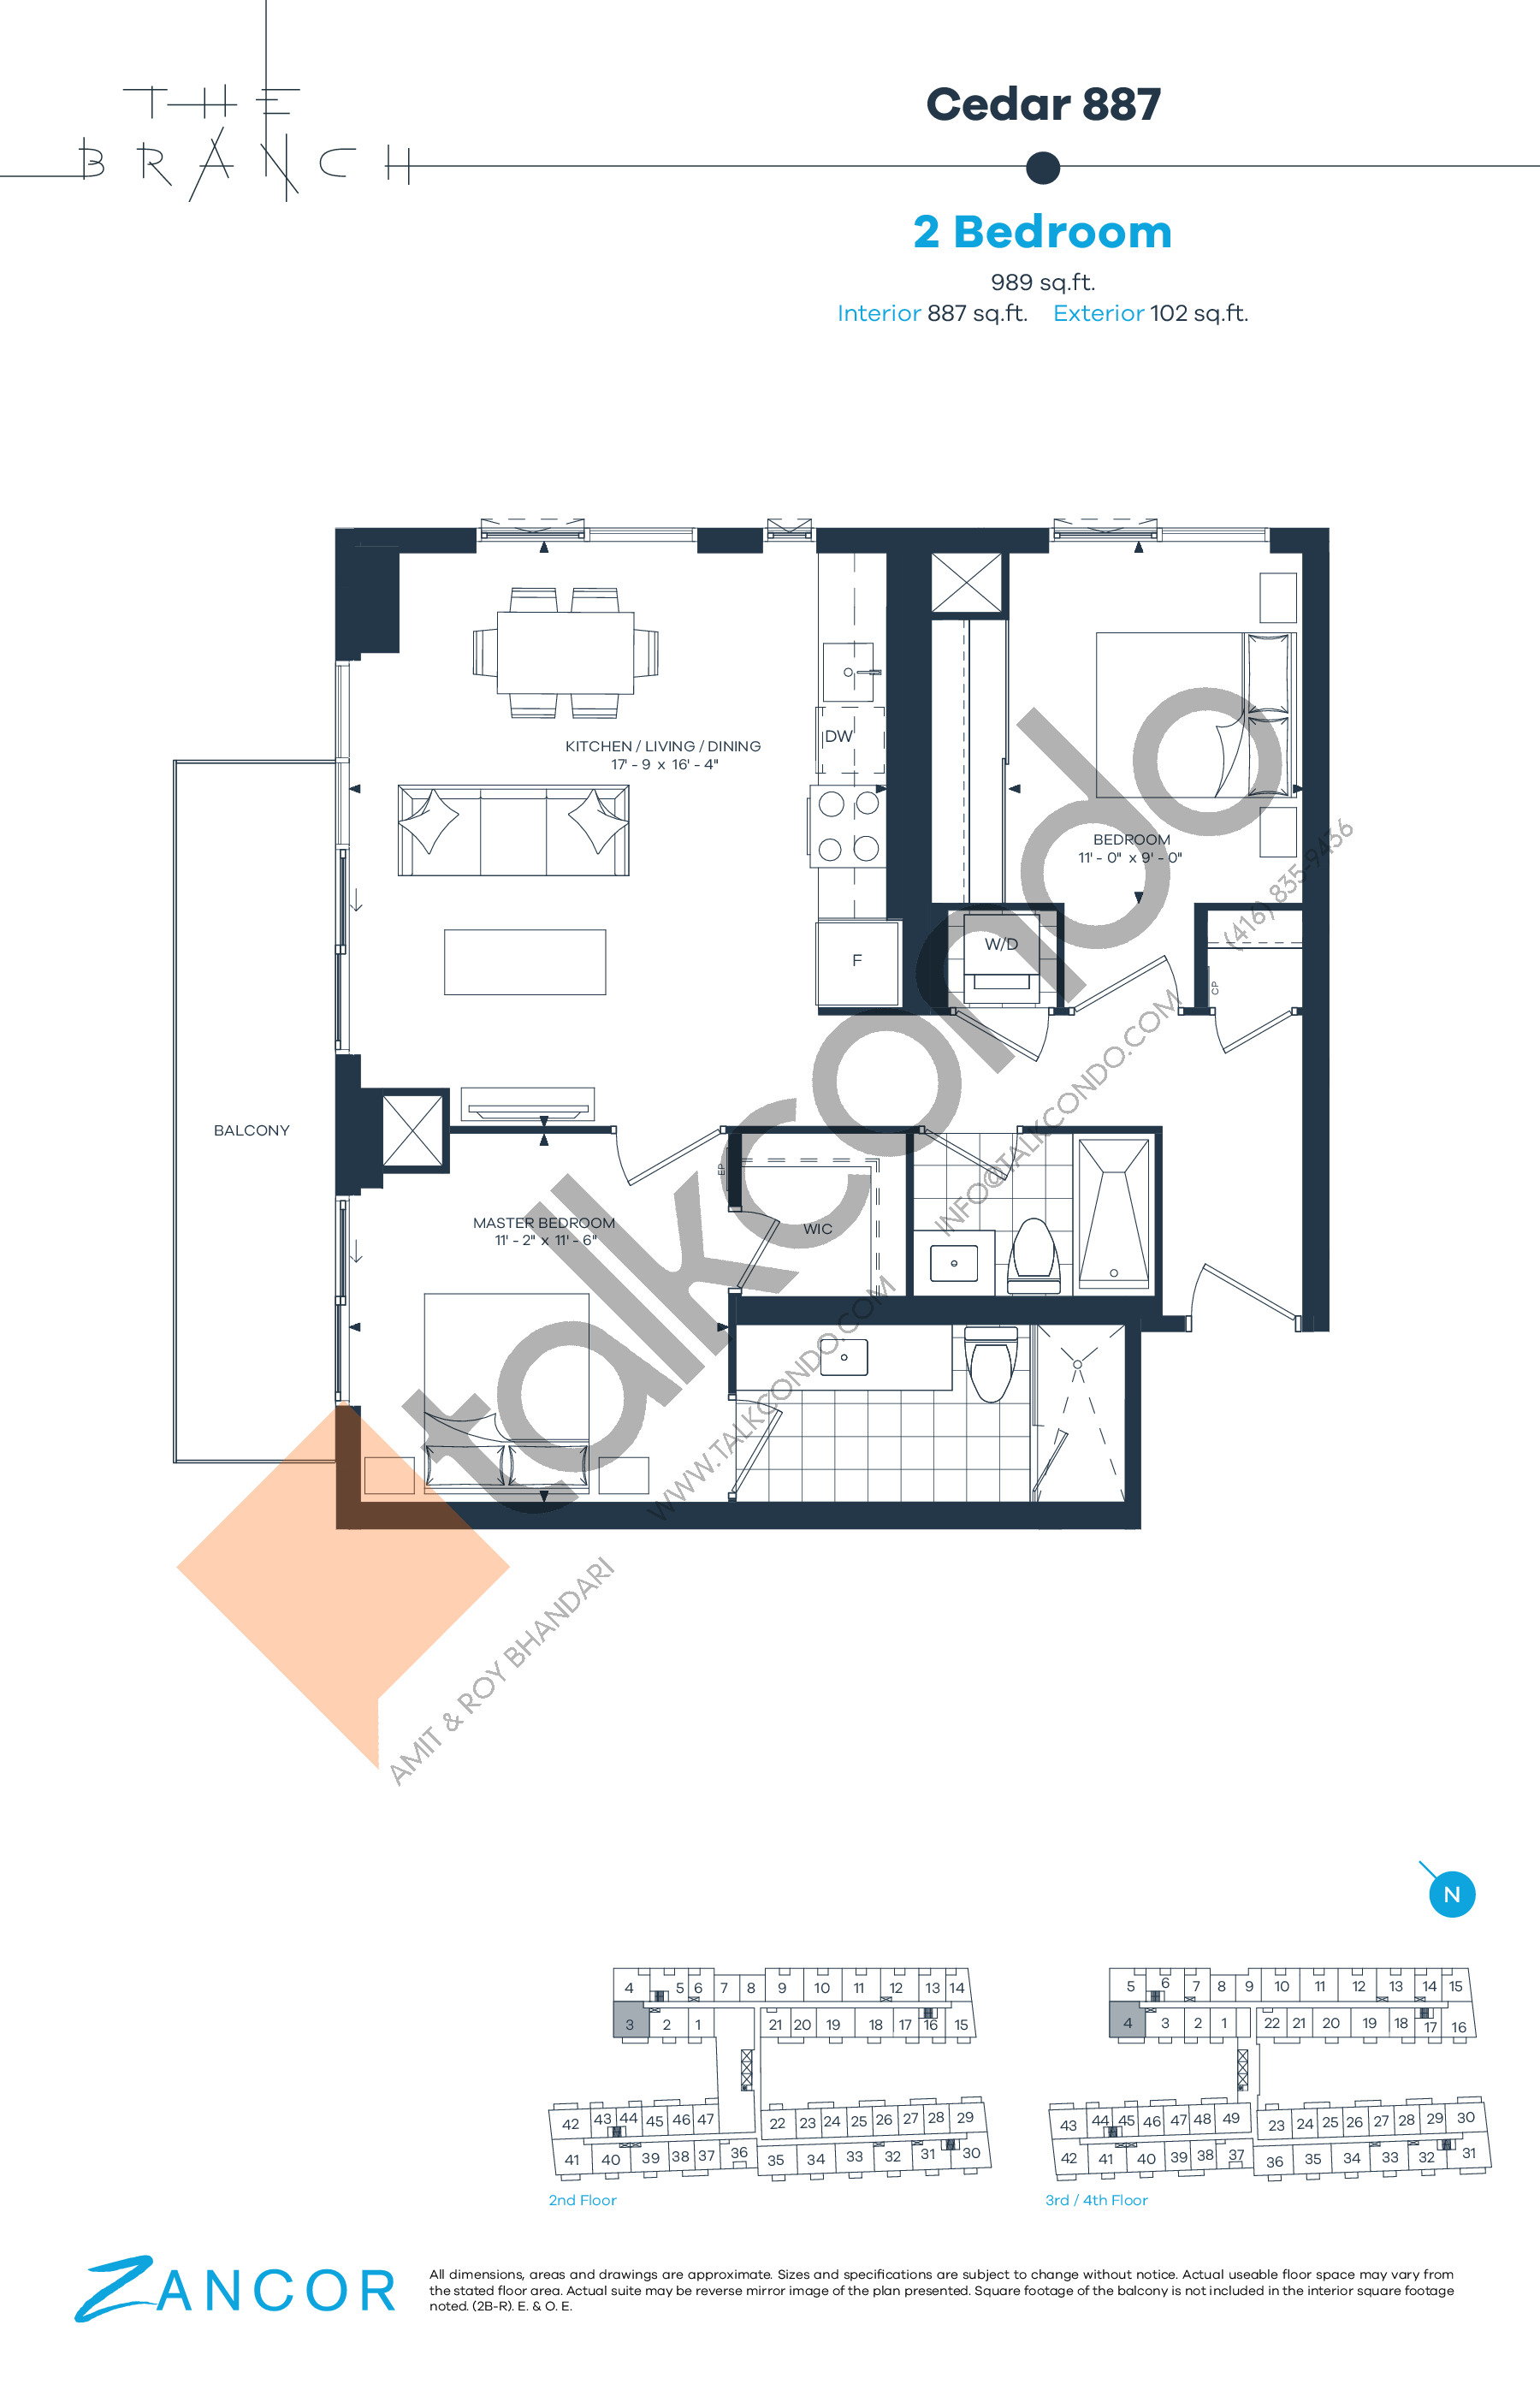 Cedar 887 Floor Plan at The Branch Condos - 887 sq.ft